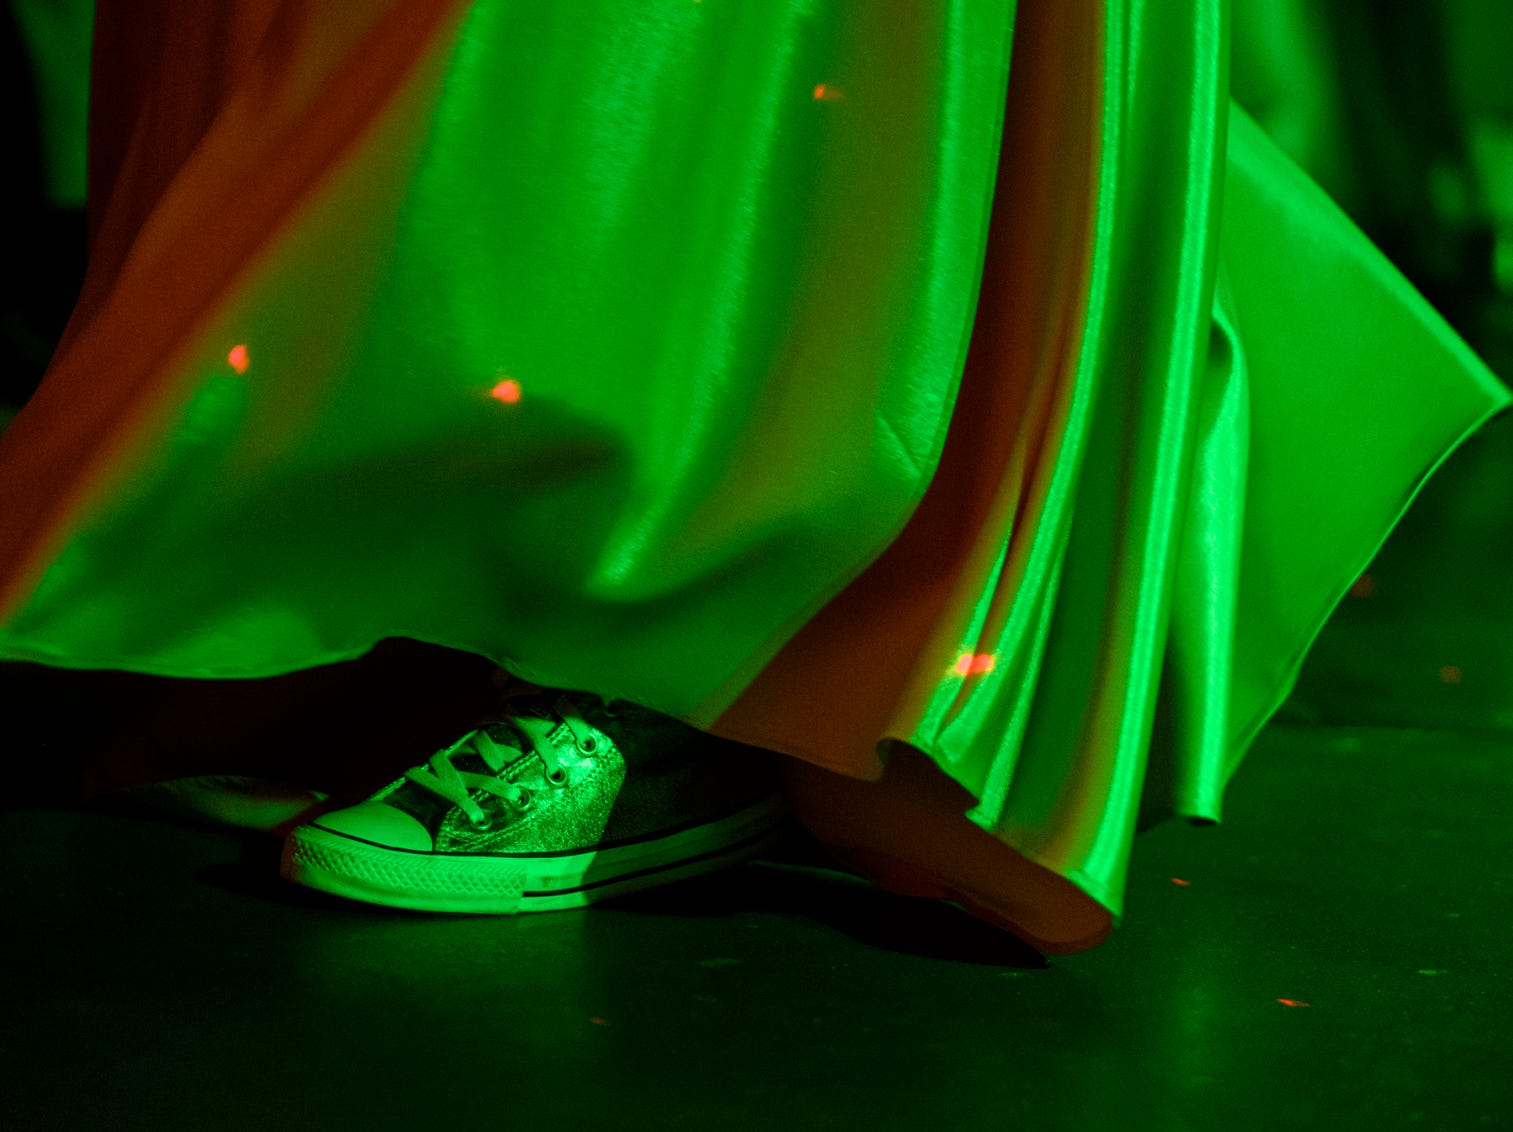 Sami Sulawske shows off her Converse Chuck Taylor shoes as she dances the night away with friends during Central High School's Uptown Night themed prom held at the Vanderburgh 4-H Center auditorium in Evansville, Ind., Saturday, April 27, 2019.